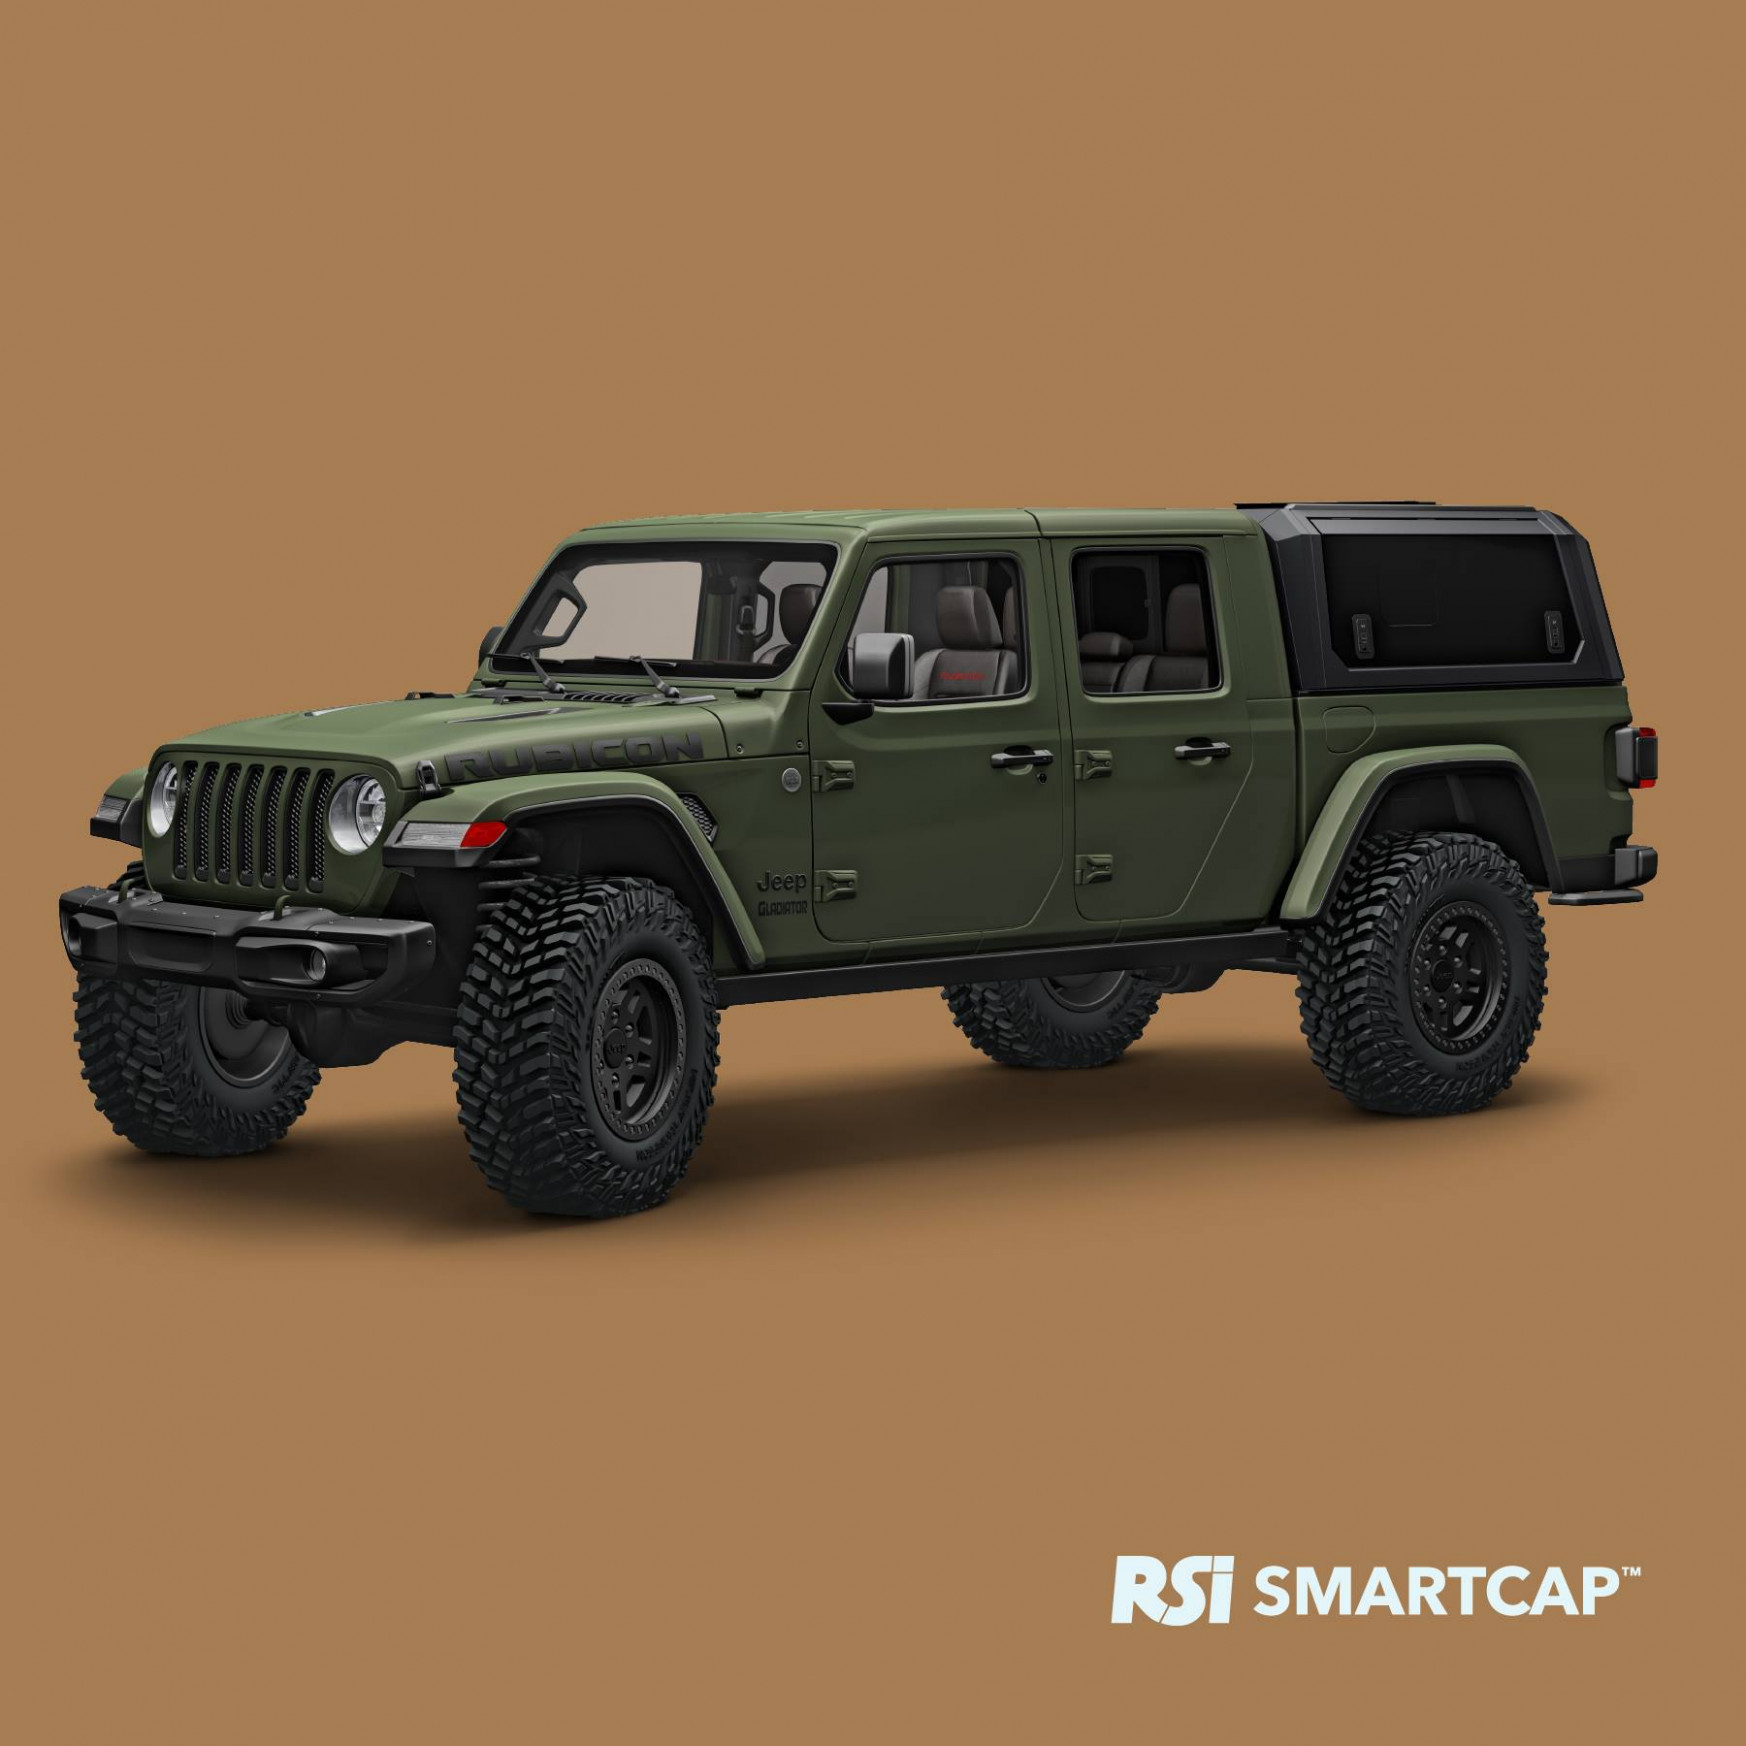 New Concept 2022 Jeep Gladiator Overall Length